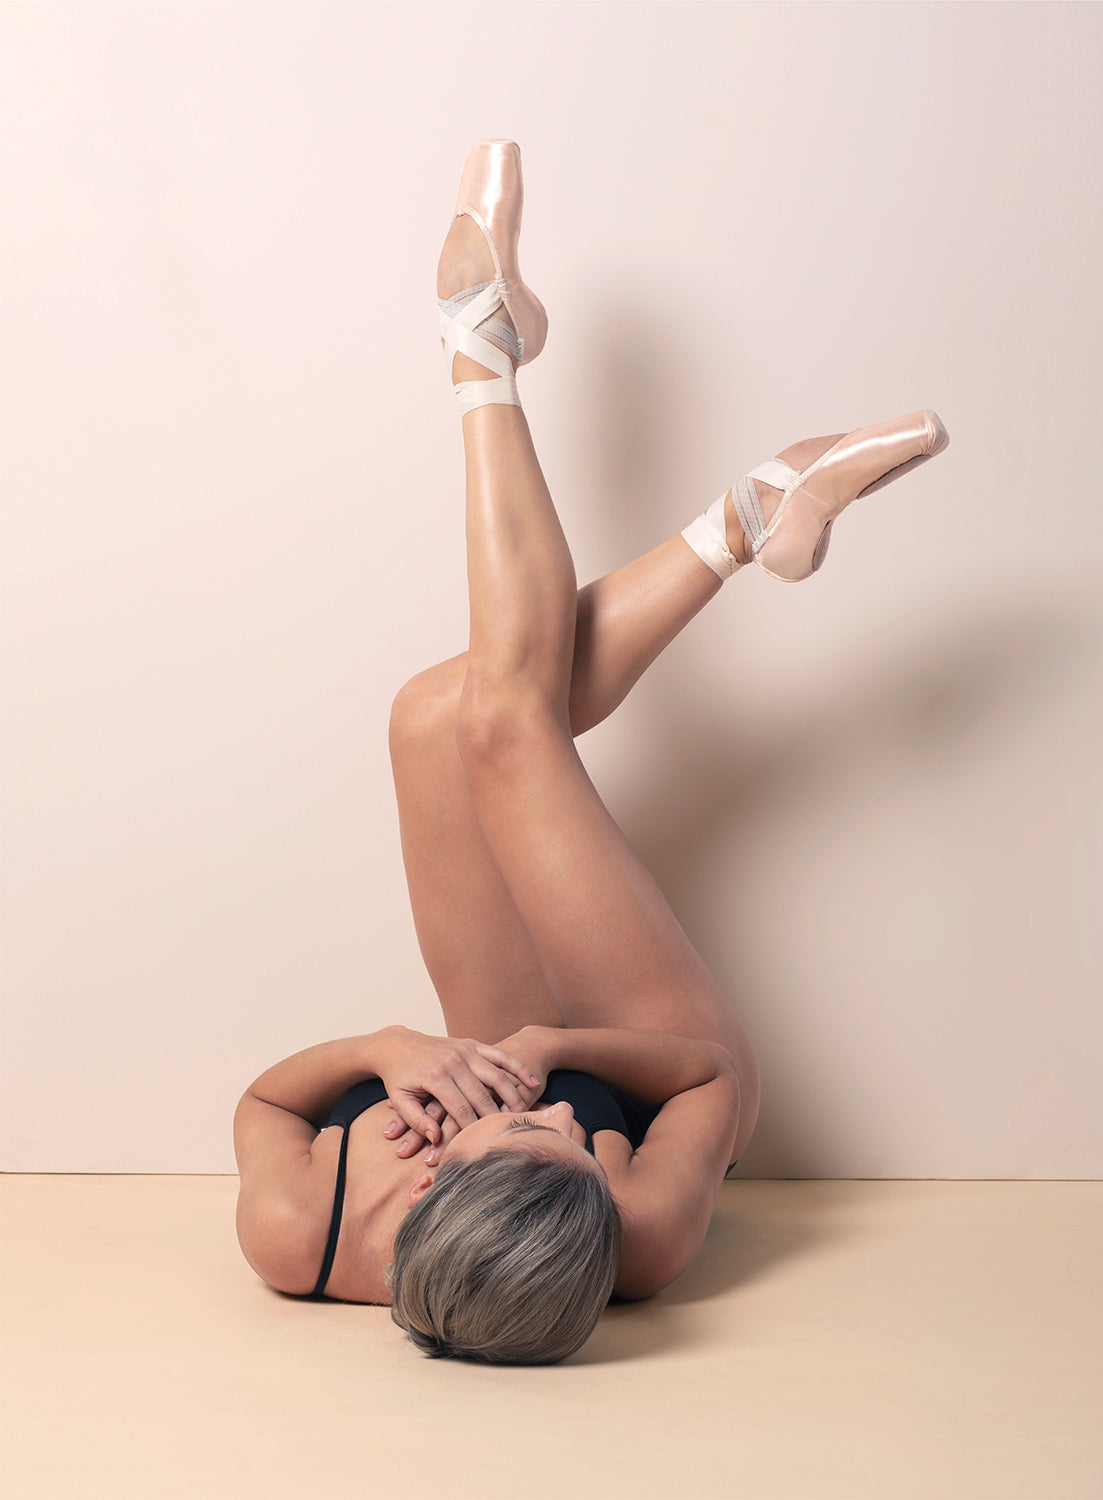 Ballet dancer Sasha Mukhamedov wearing her BLOCH pointe Shoes